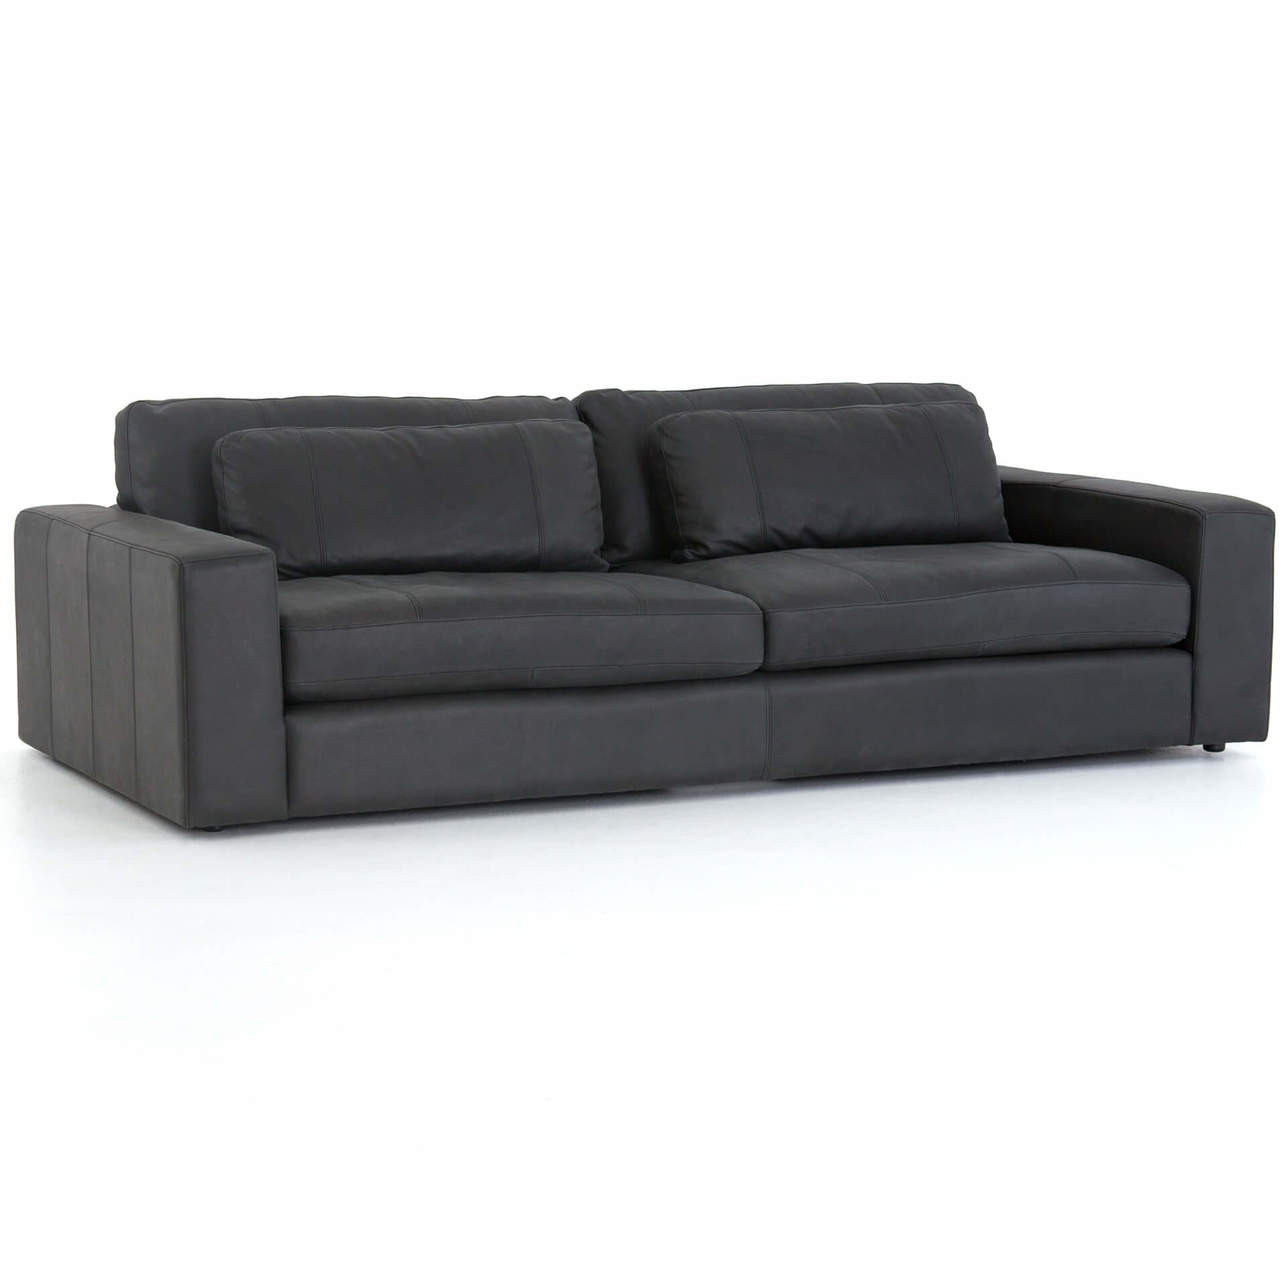 Bloor Contemporary Black Leather Sofa 98\